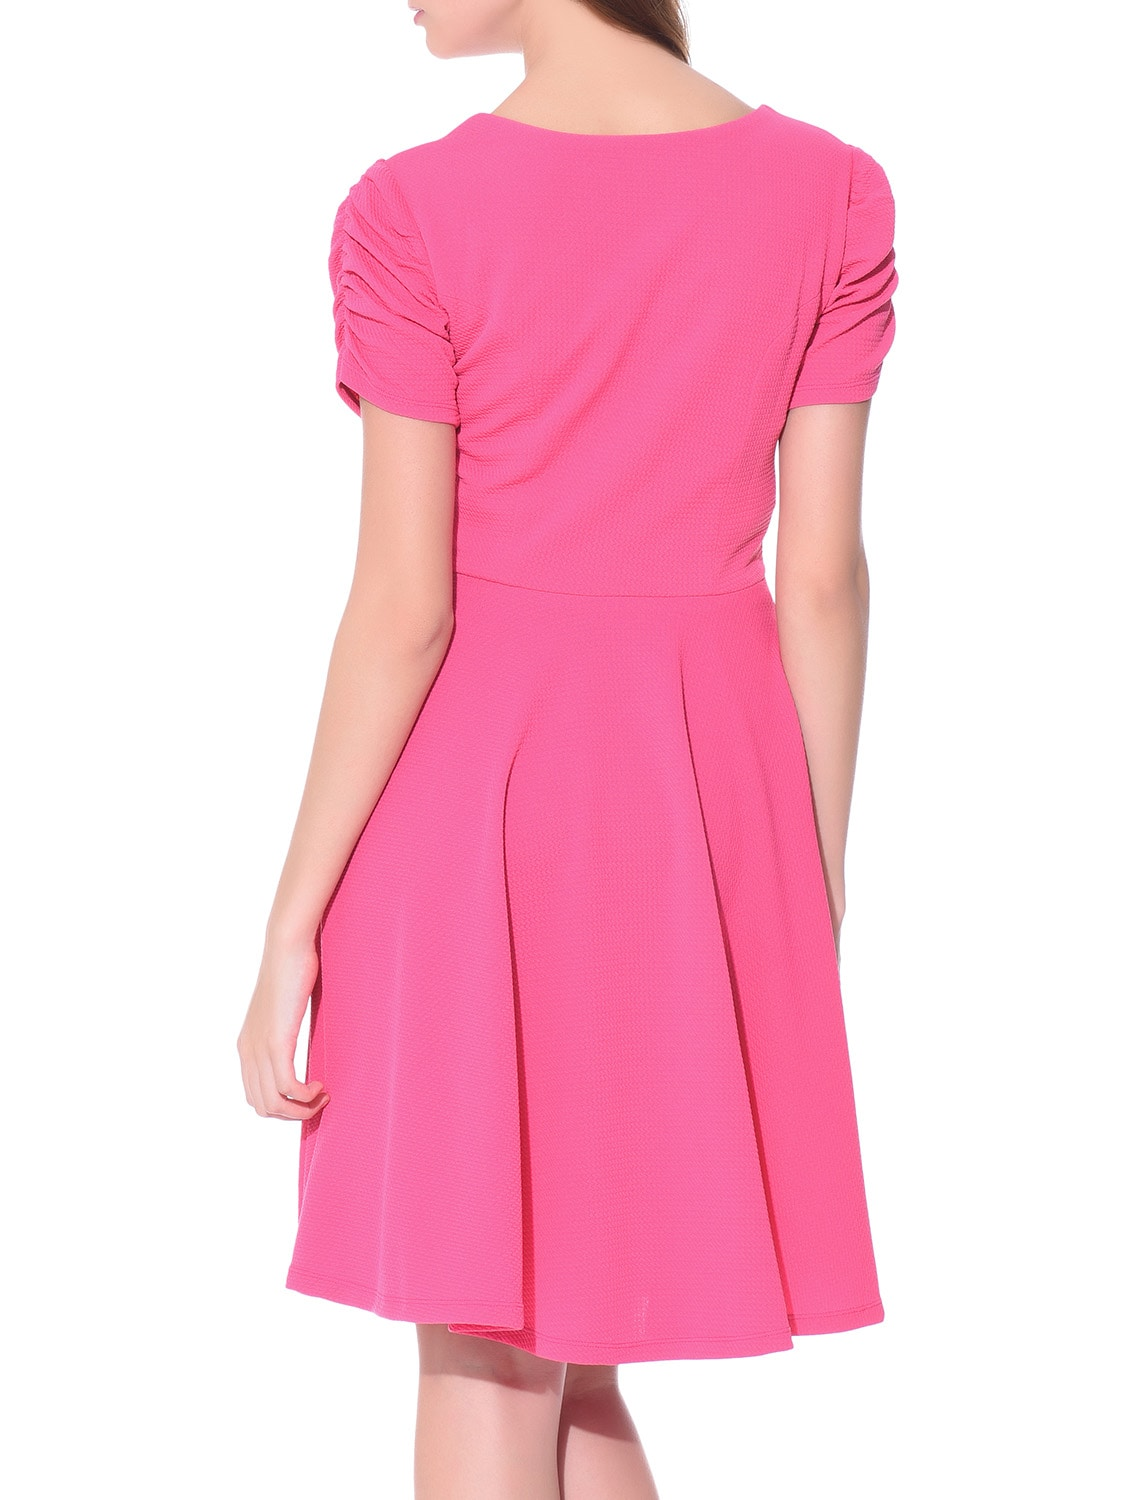 7638476a7a8 Buy Solid Pink Dress for Women from Aara for ₹782 at 51% off | 2019  Limeroad.com